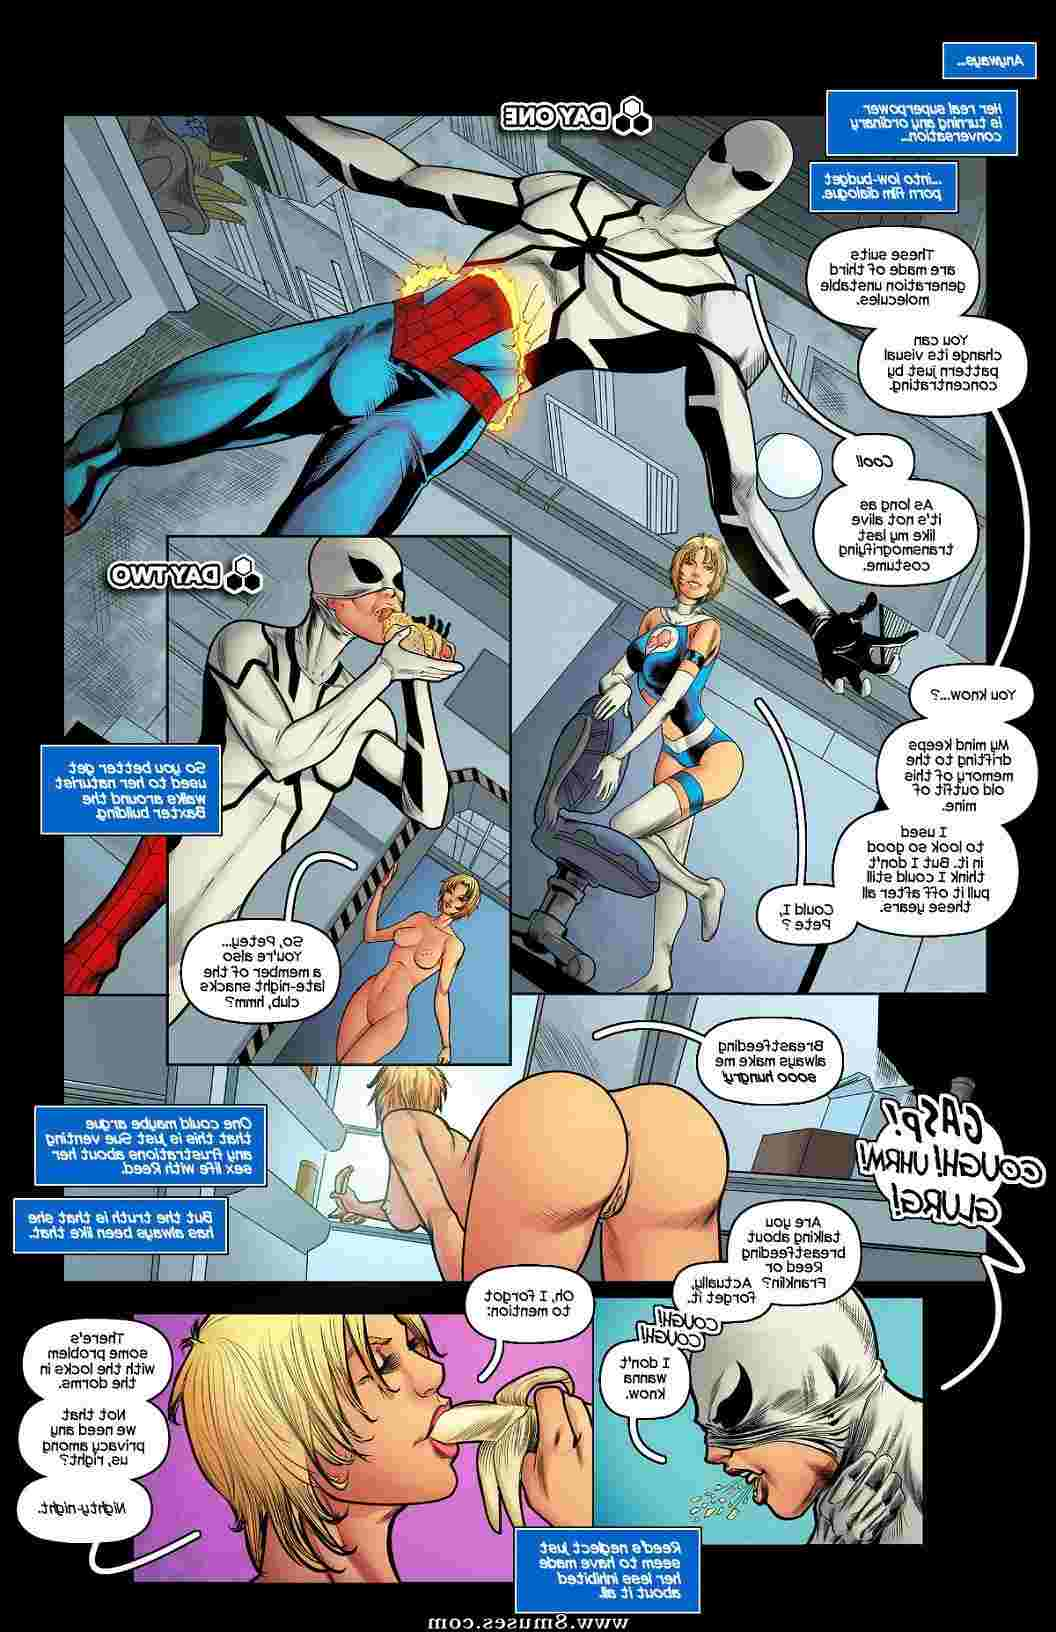 Tracy-Scops-Comics/Future-Foundation Future_Foundation__8muses_-_Sex_and_Porn_Comics_4.jpg